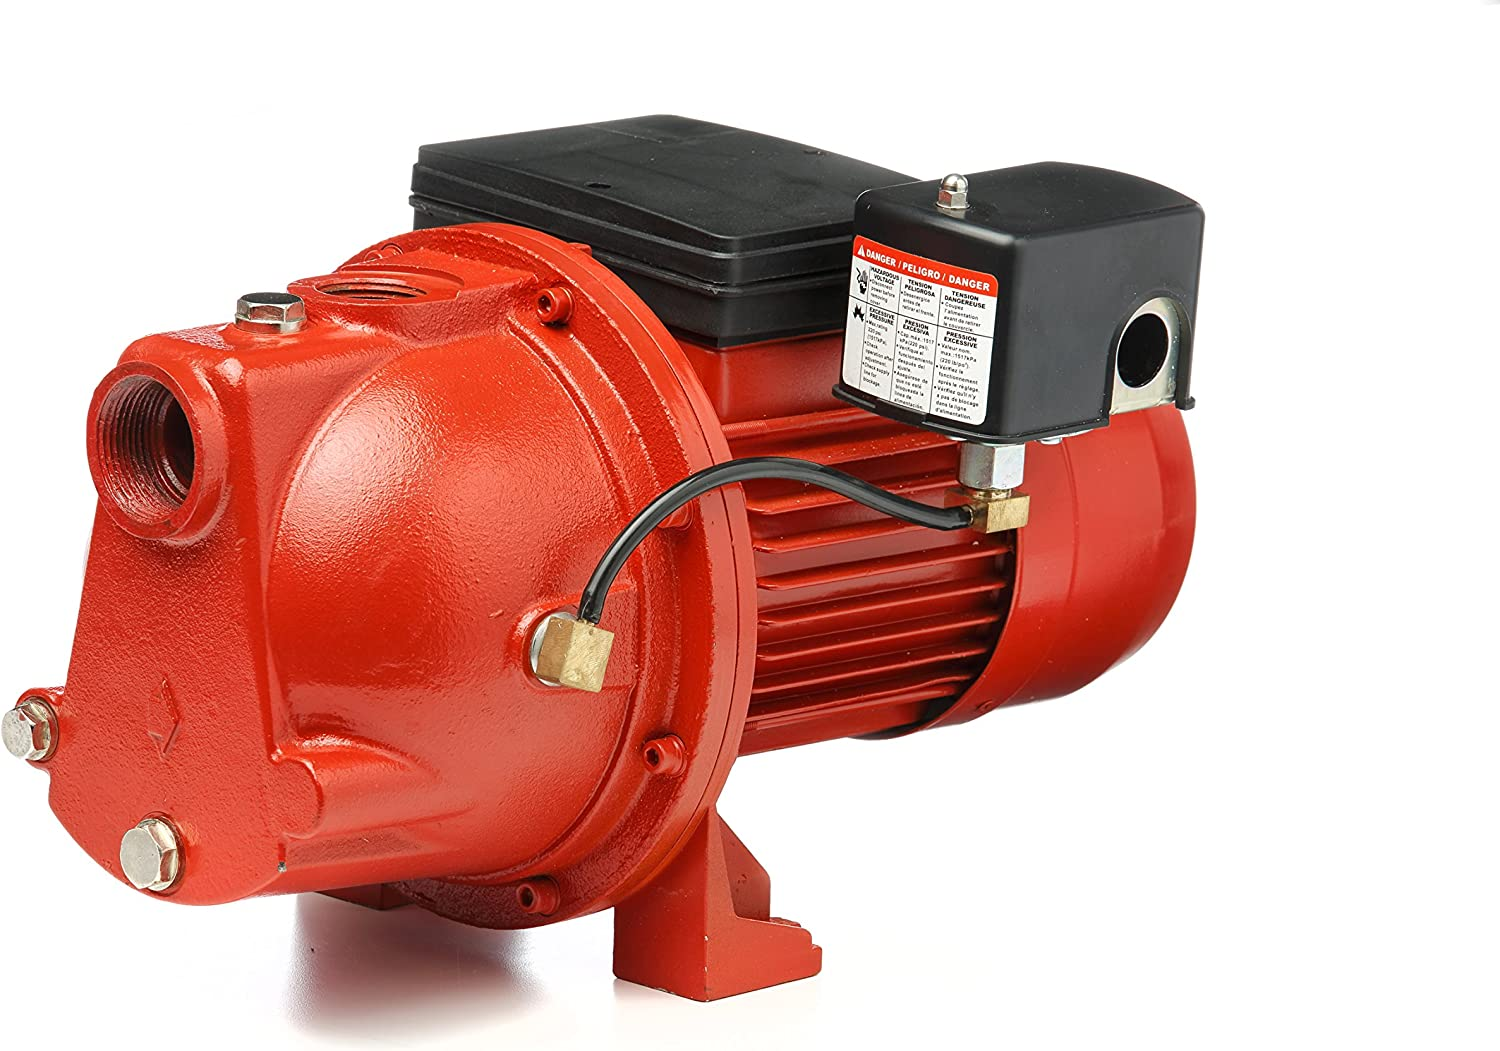 Red Lion 97081001 Cast Iron 1-HP 17-GPM Shallow Well Jet Pump, Red